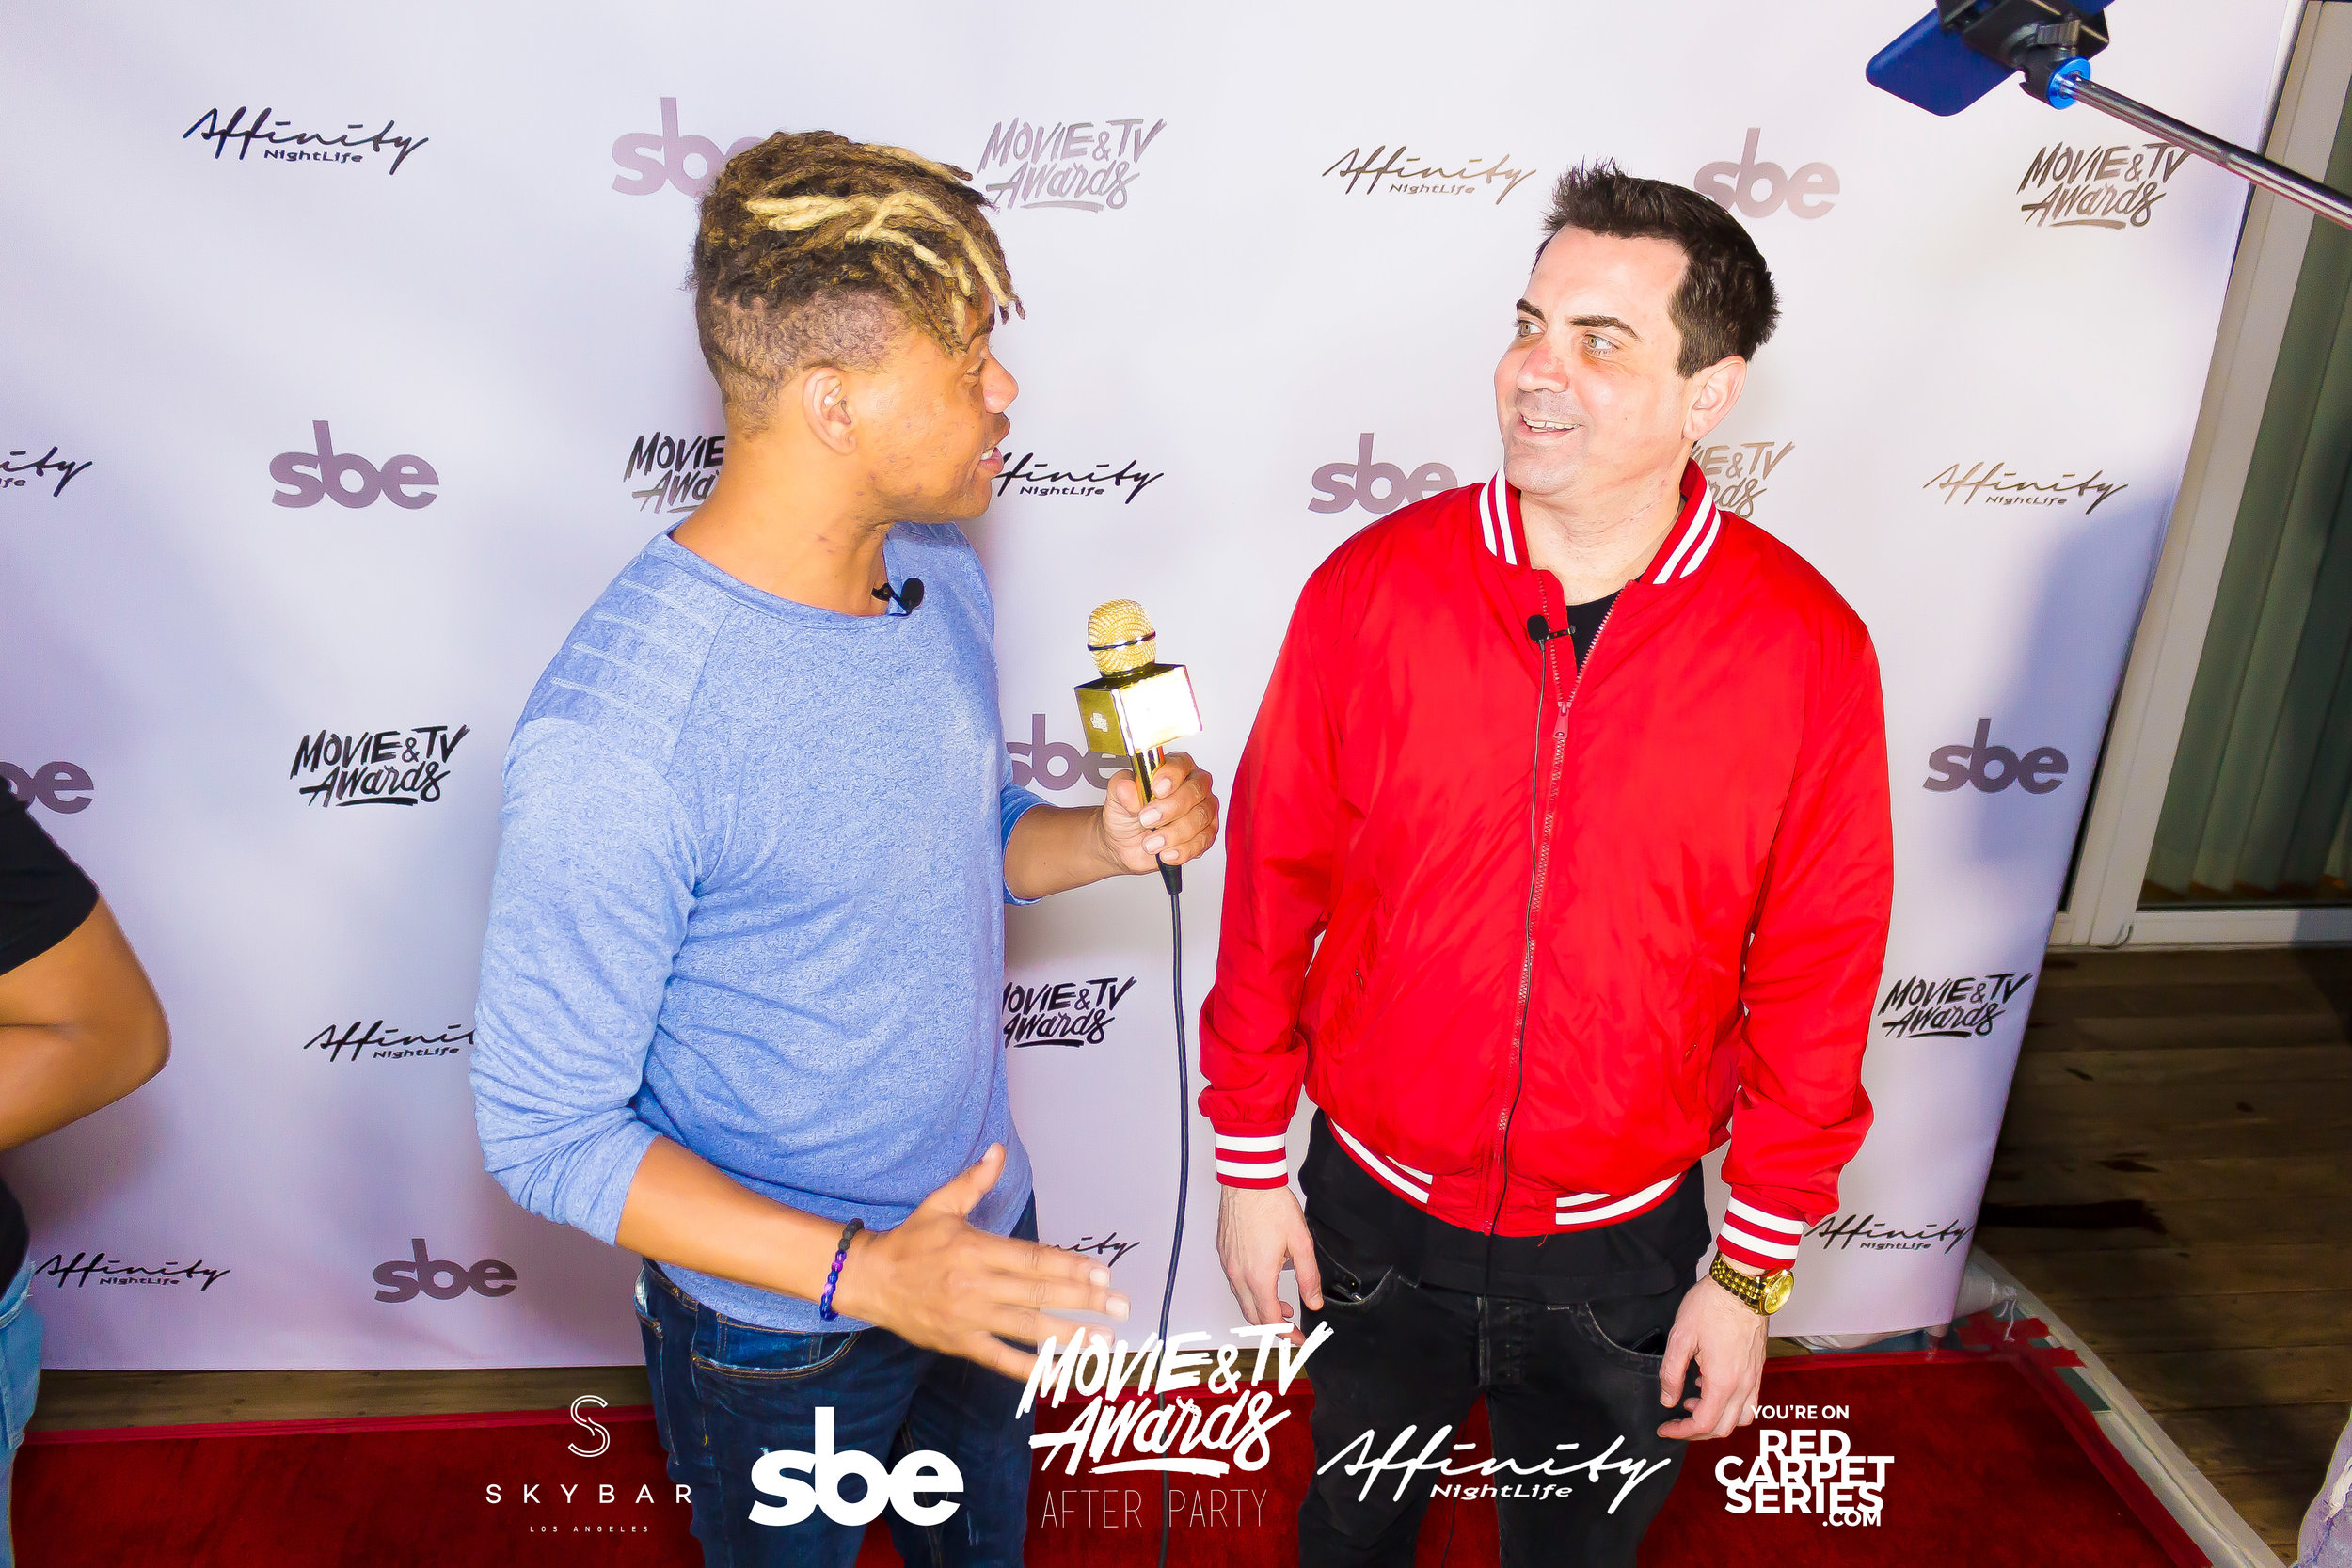 Affinity Nightlife MTV Movie & TV Awards After Party - Skybar at Mondrian - 06-15-19 - Vol. 1_147.jpg